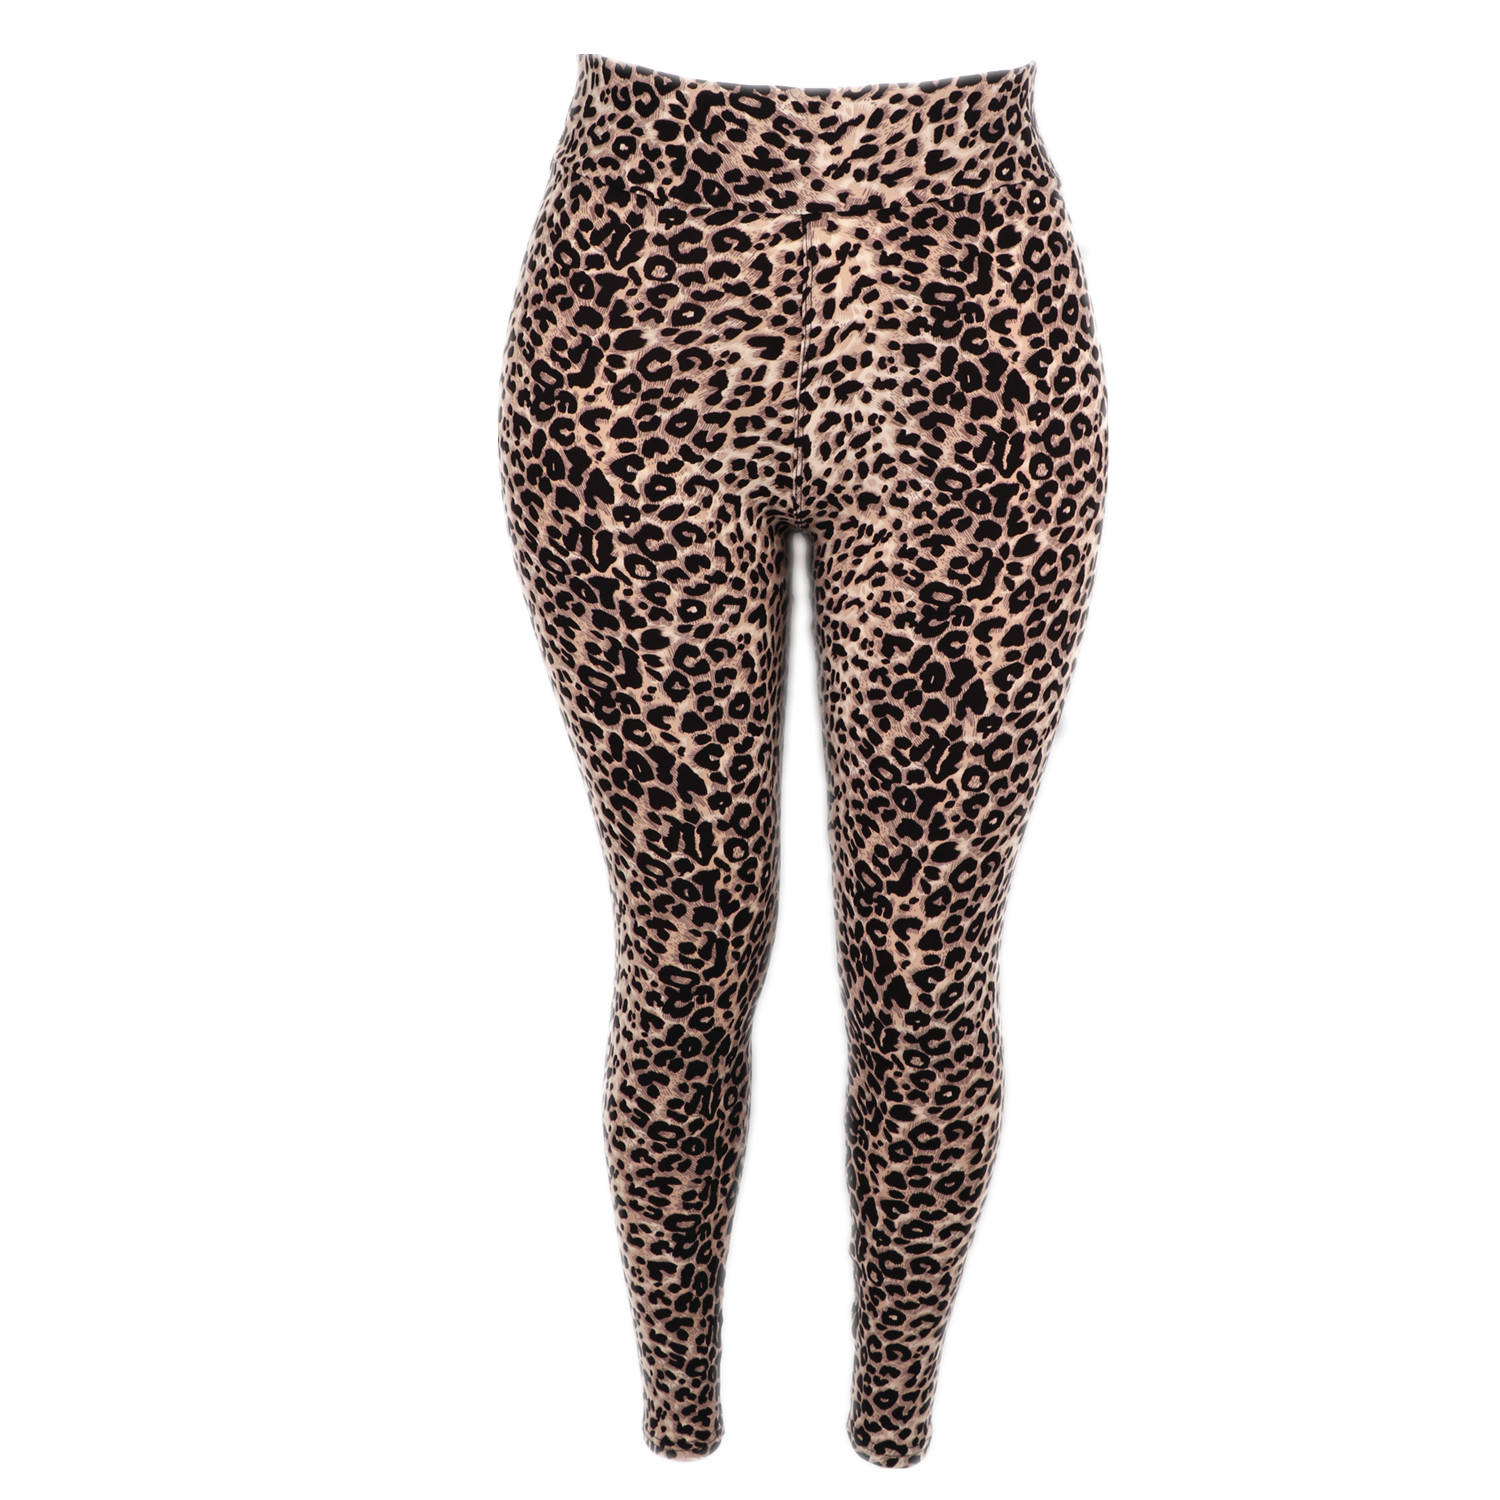 Super soft buttery quality good stretch high waist yoga tight pants wholesale cheap sexy women leopards animal leggings 2020